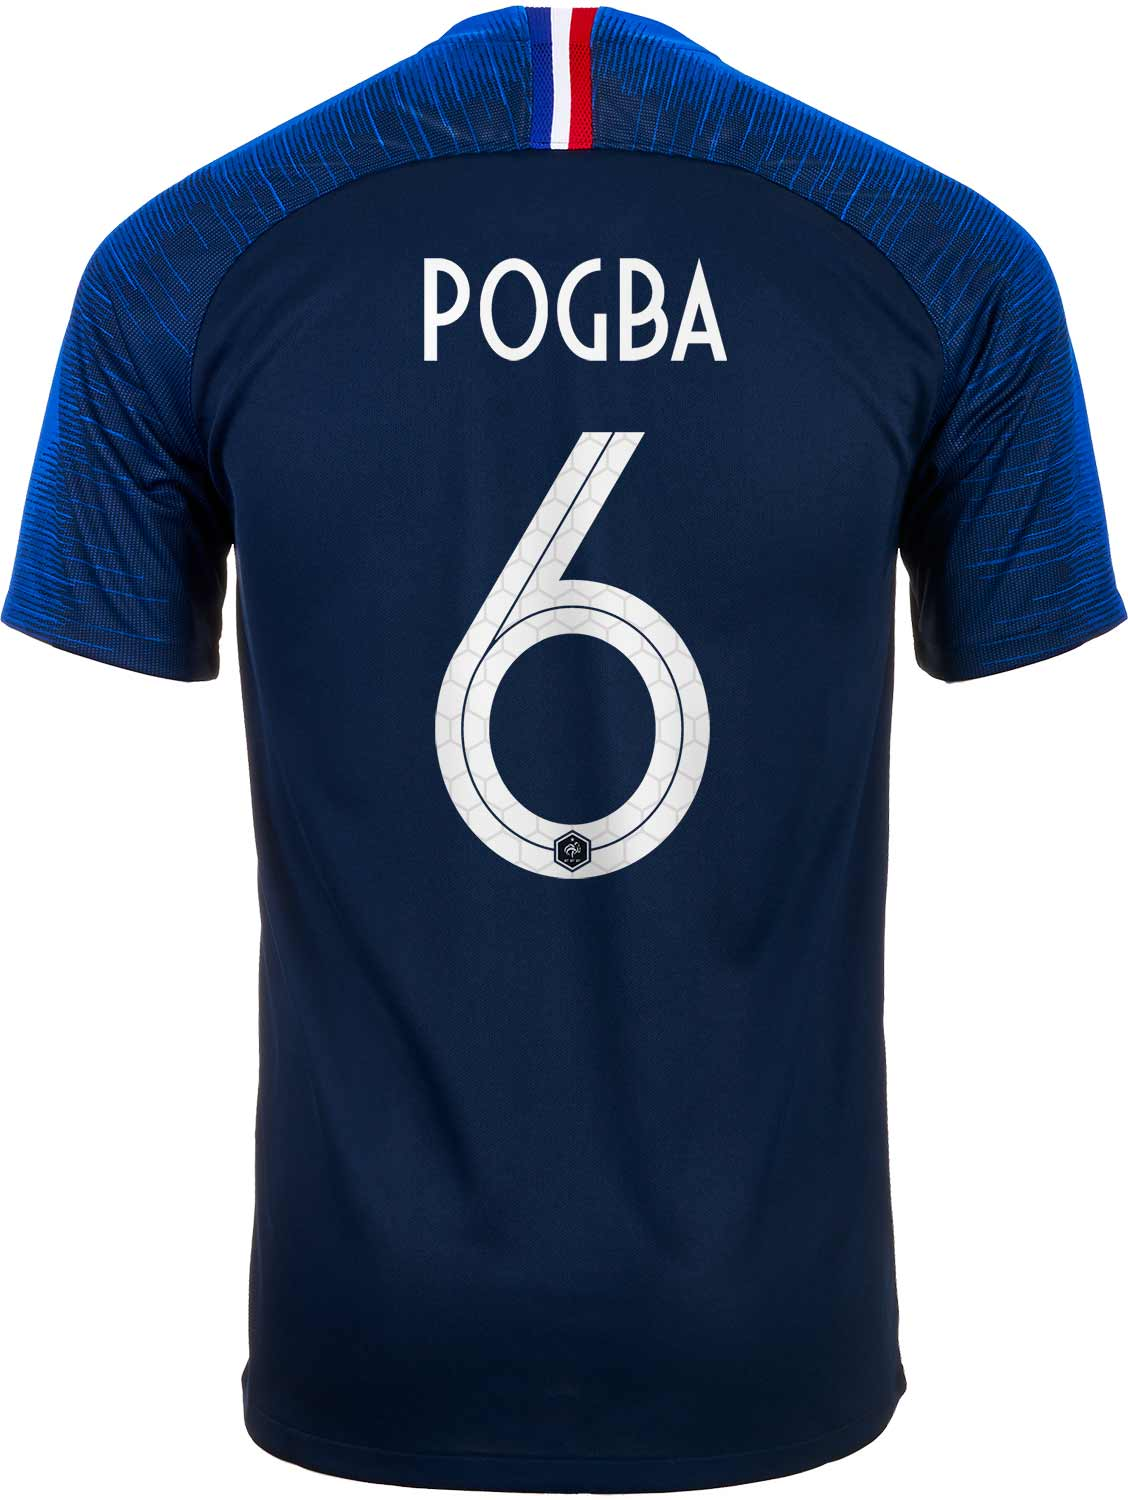 pretty nice 61dcd 1b09a 2018/19 Nike Paul Pogba France Home Jersey - SoccerPro